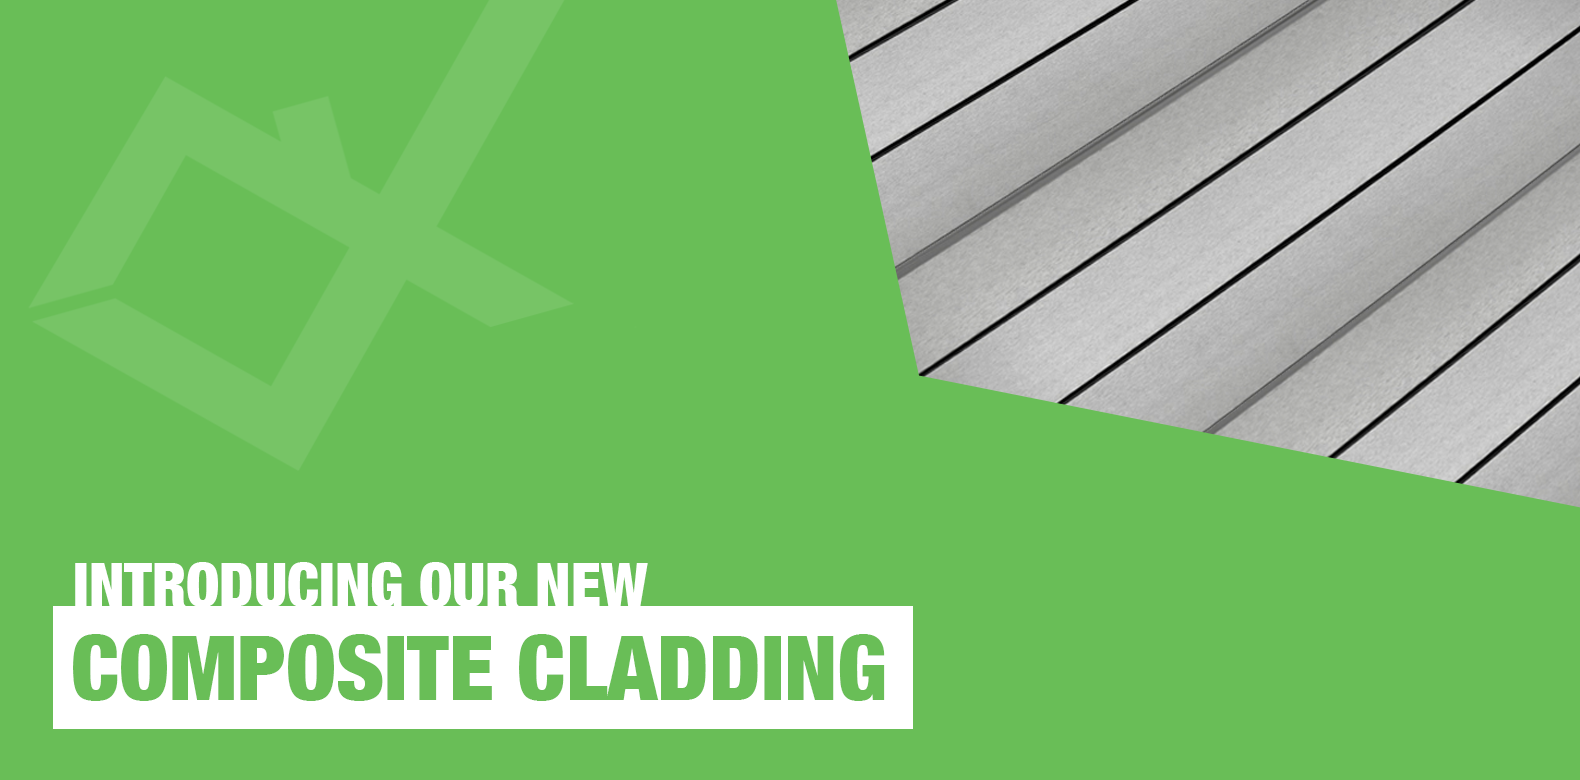 Introducing Our New Composite Cladding